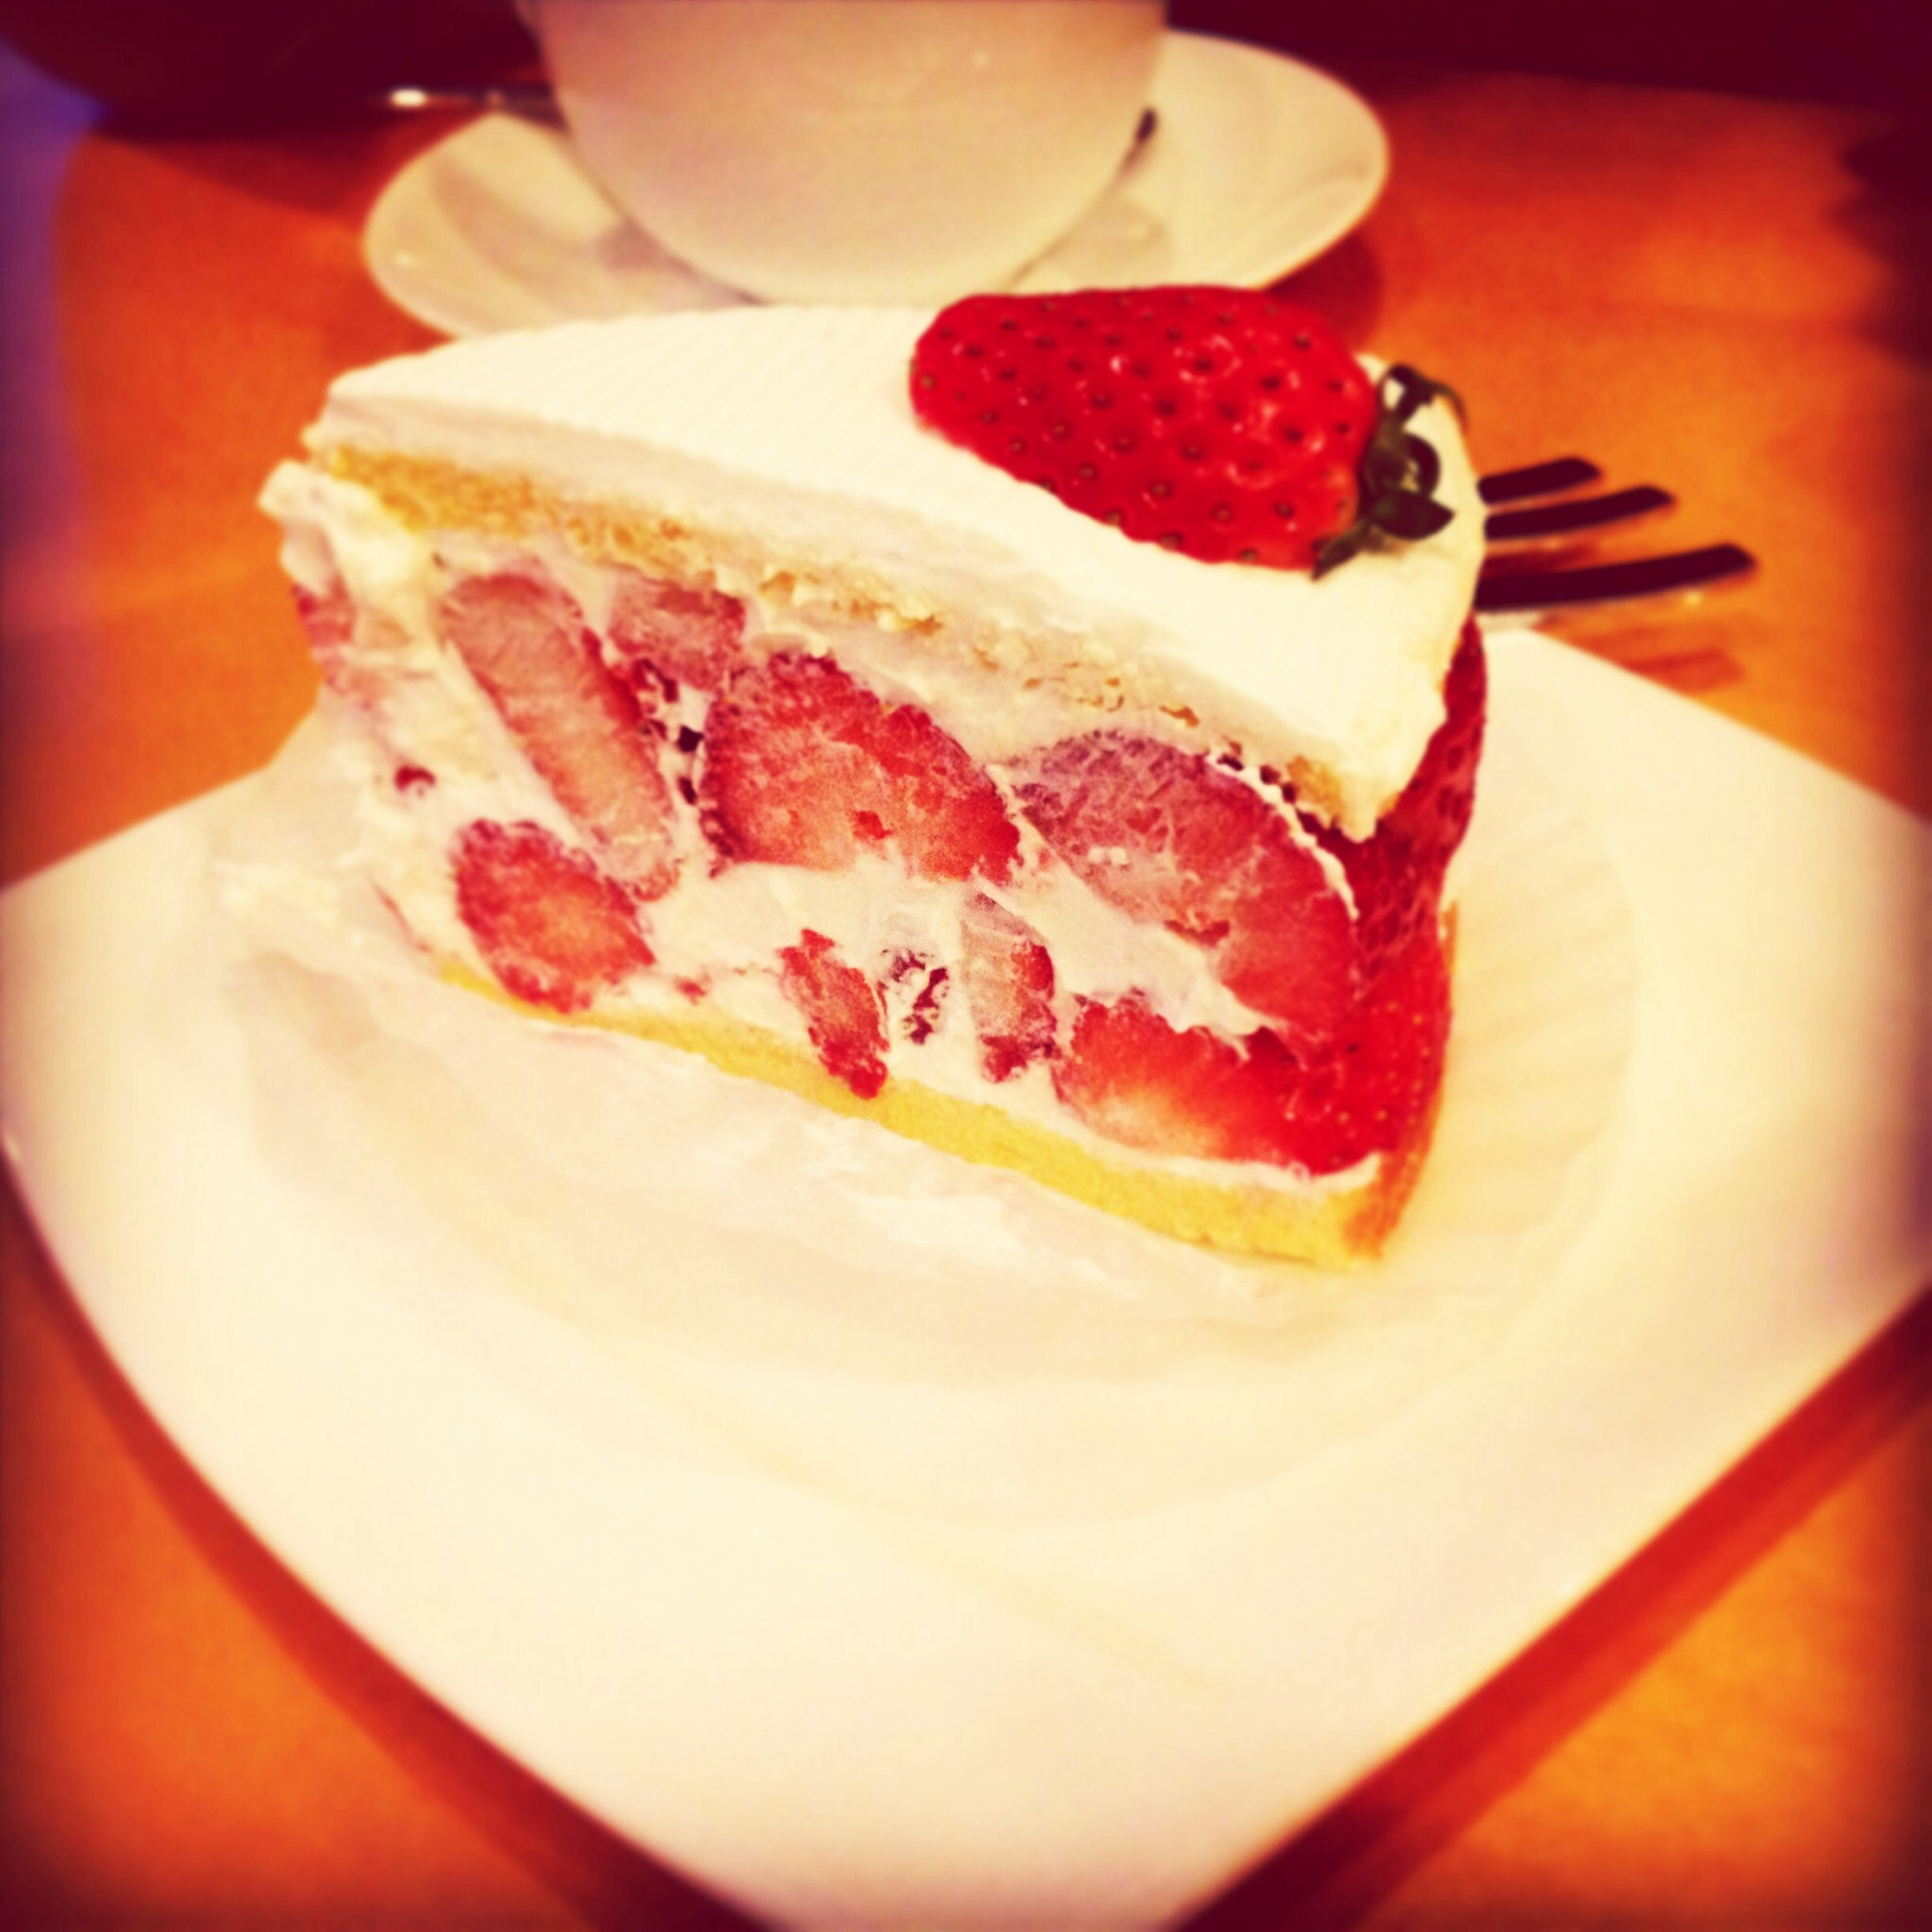 food and drink, food, indoors, freshness, ready-to-eat, sweet food, indulgence, dessert, unhealthy eating, plate, close-up, still life, temptation, strawberry, table, cake, red, ice cream, serving size, focus on foreground